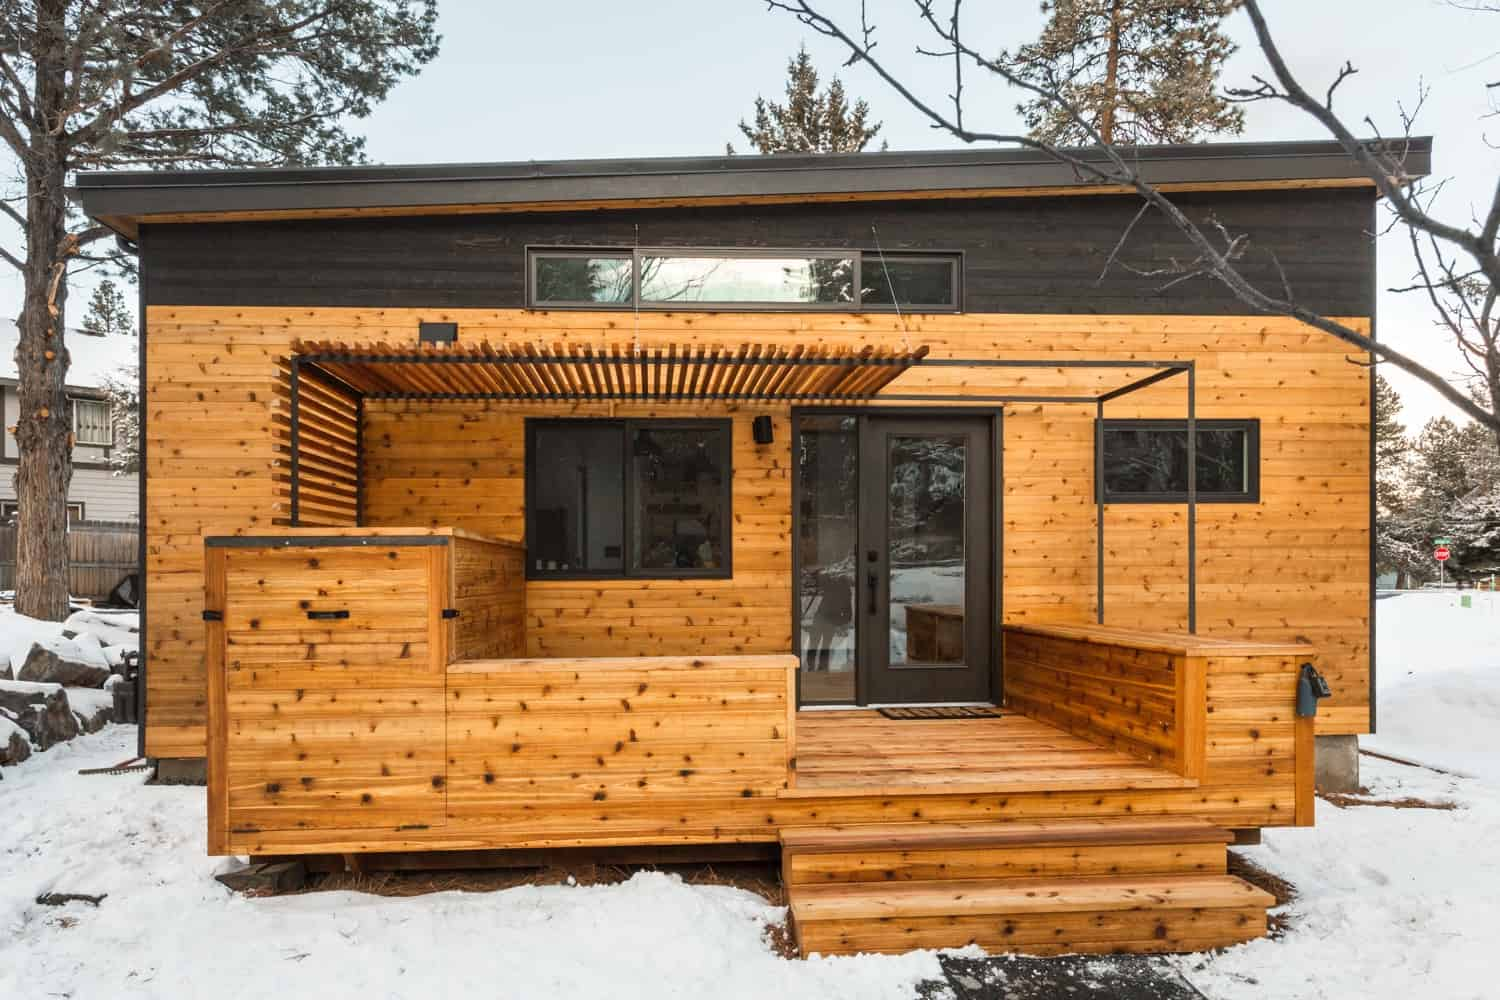 Tiny Home Designs: Hiatus Tiny House Shows Off Superb Design